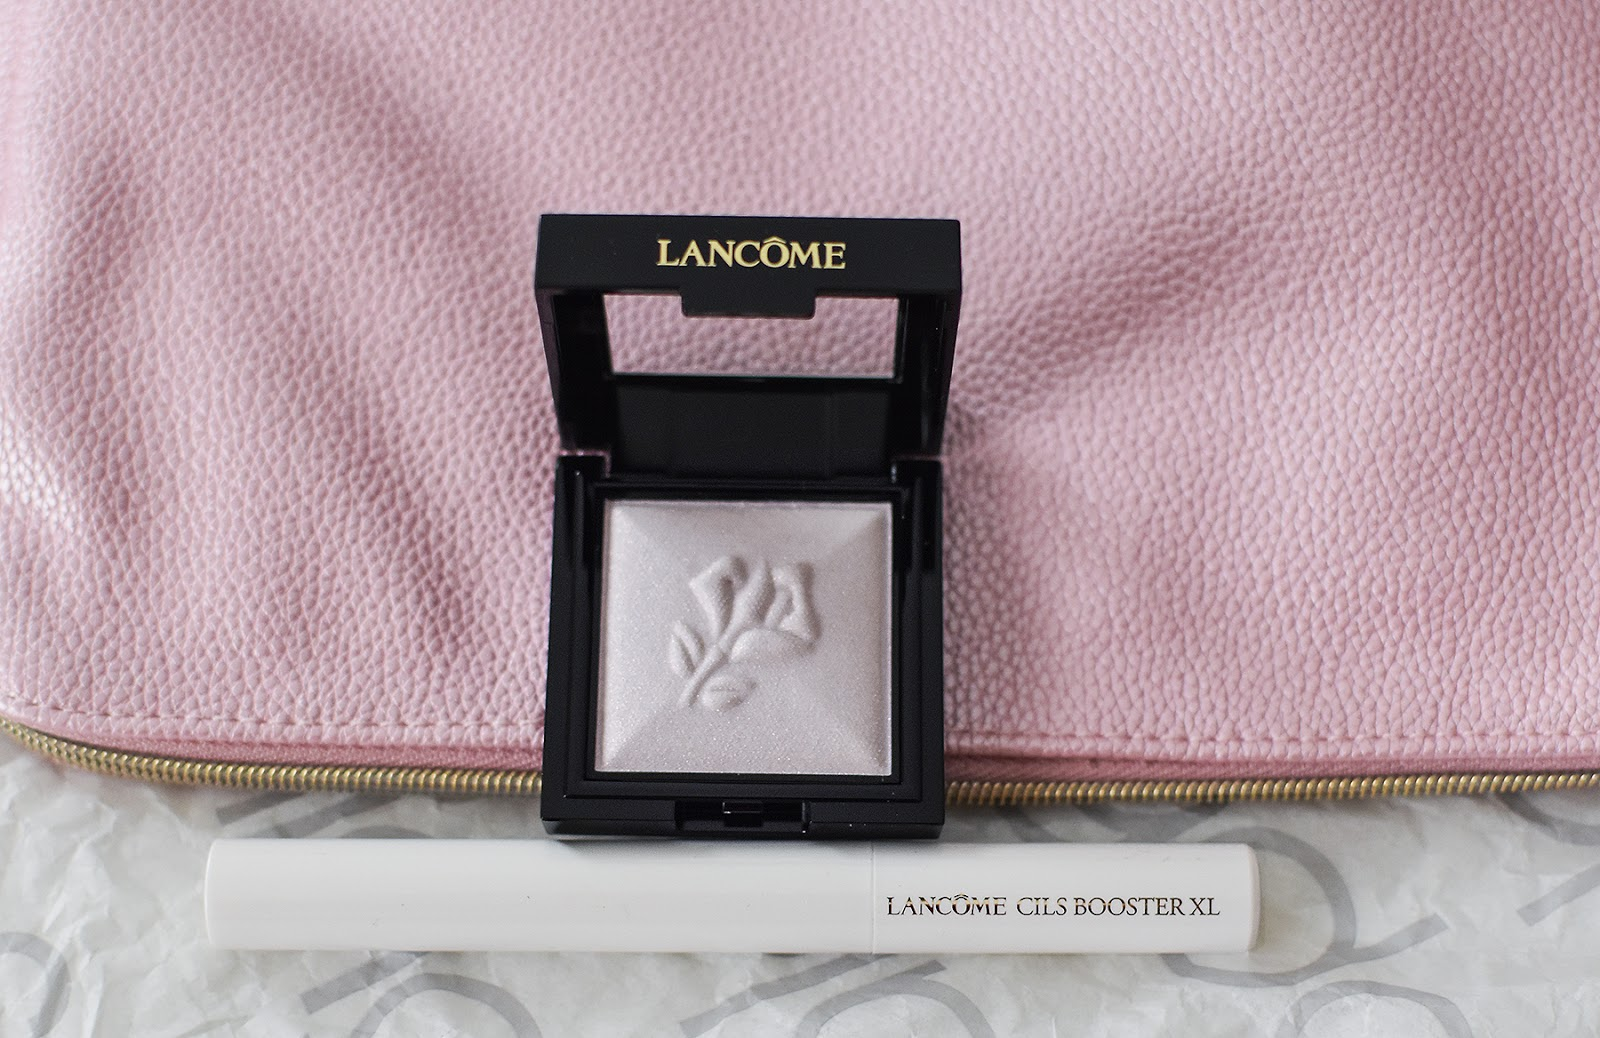 Lancomemakeup,Lancome Le Monochromatique multi-purpose powder  Lancome Cils Booster XL Super-Enhancing Mascara Base